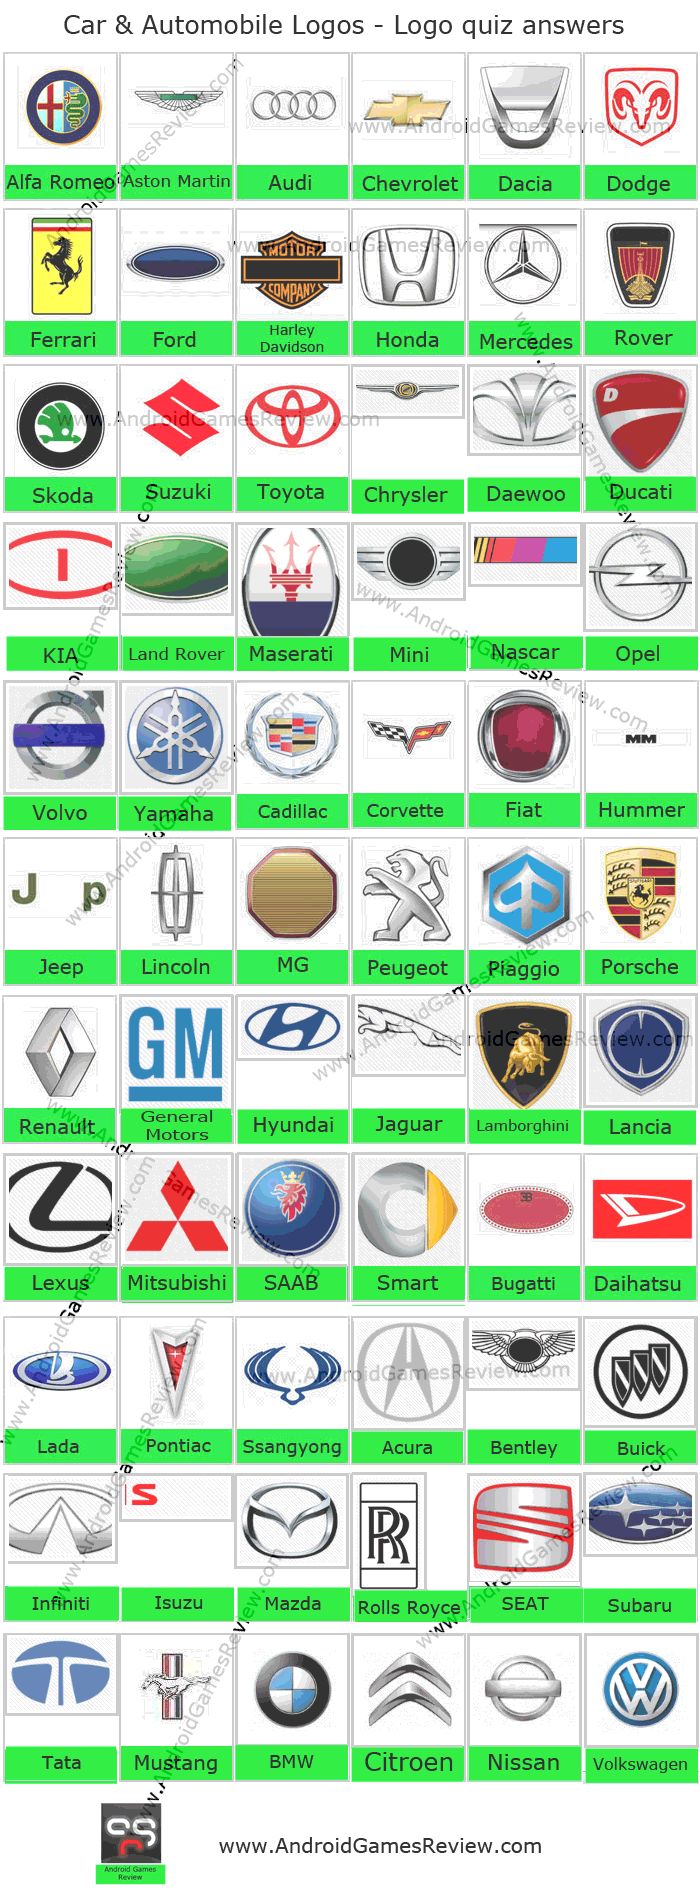 Logo Quiz Review | Android Games Review Cars Logos Quiz Answers